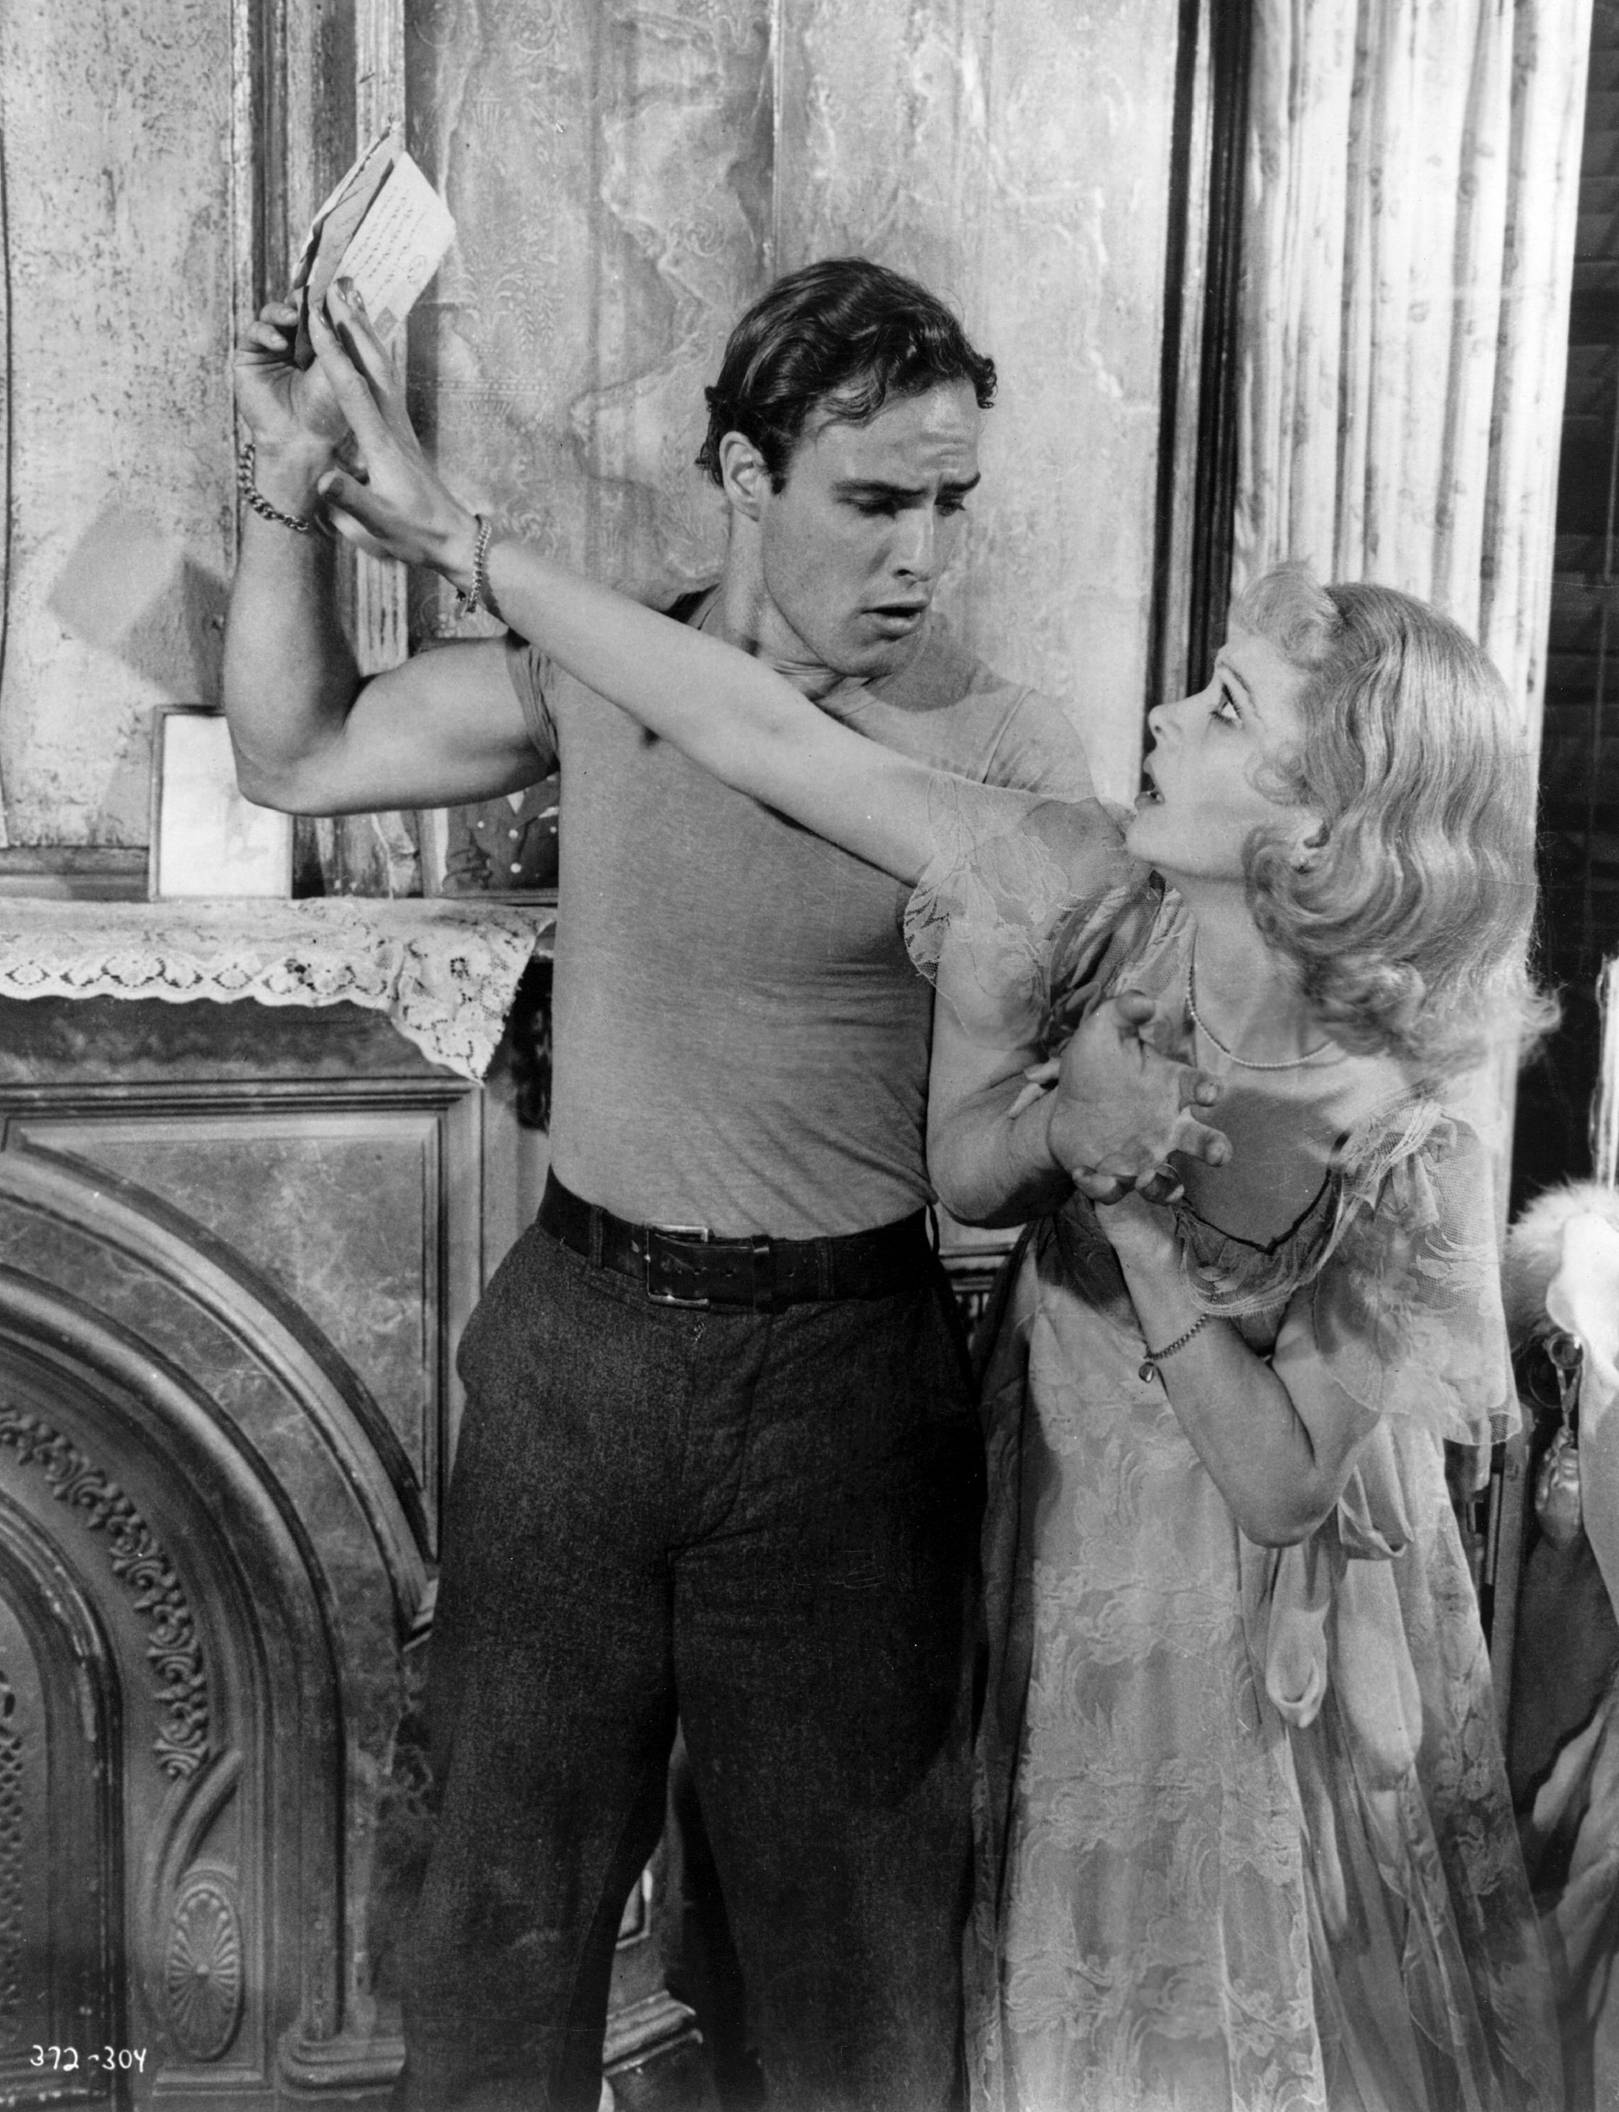 williams view on the conflicted worlds of blanche dubois and stanley kowalski and the faded american What to say about a streetcar named desire at the very different world of her brother-in-law, stanley kowalski the role of blanche dubois in the.